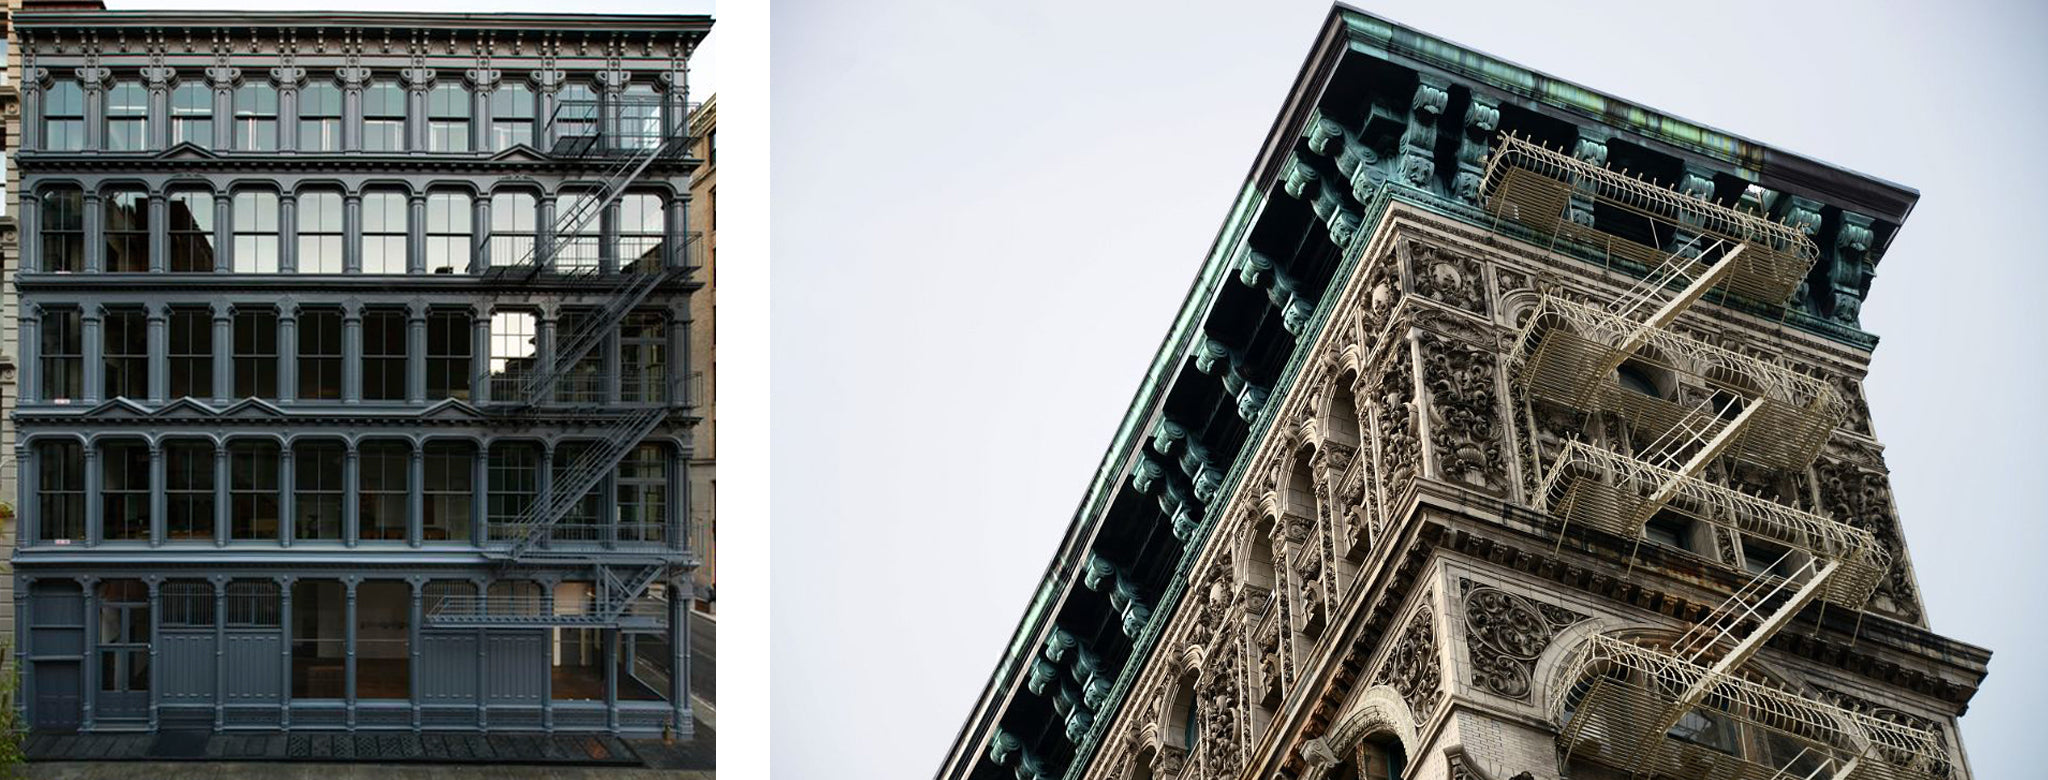 Cast Iron buildings in Soho, New York